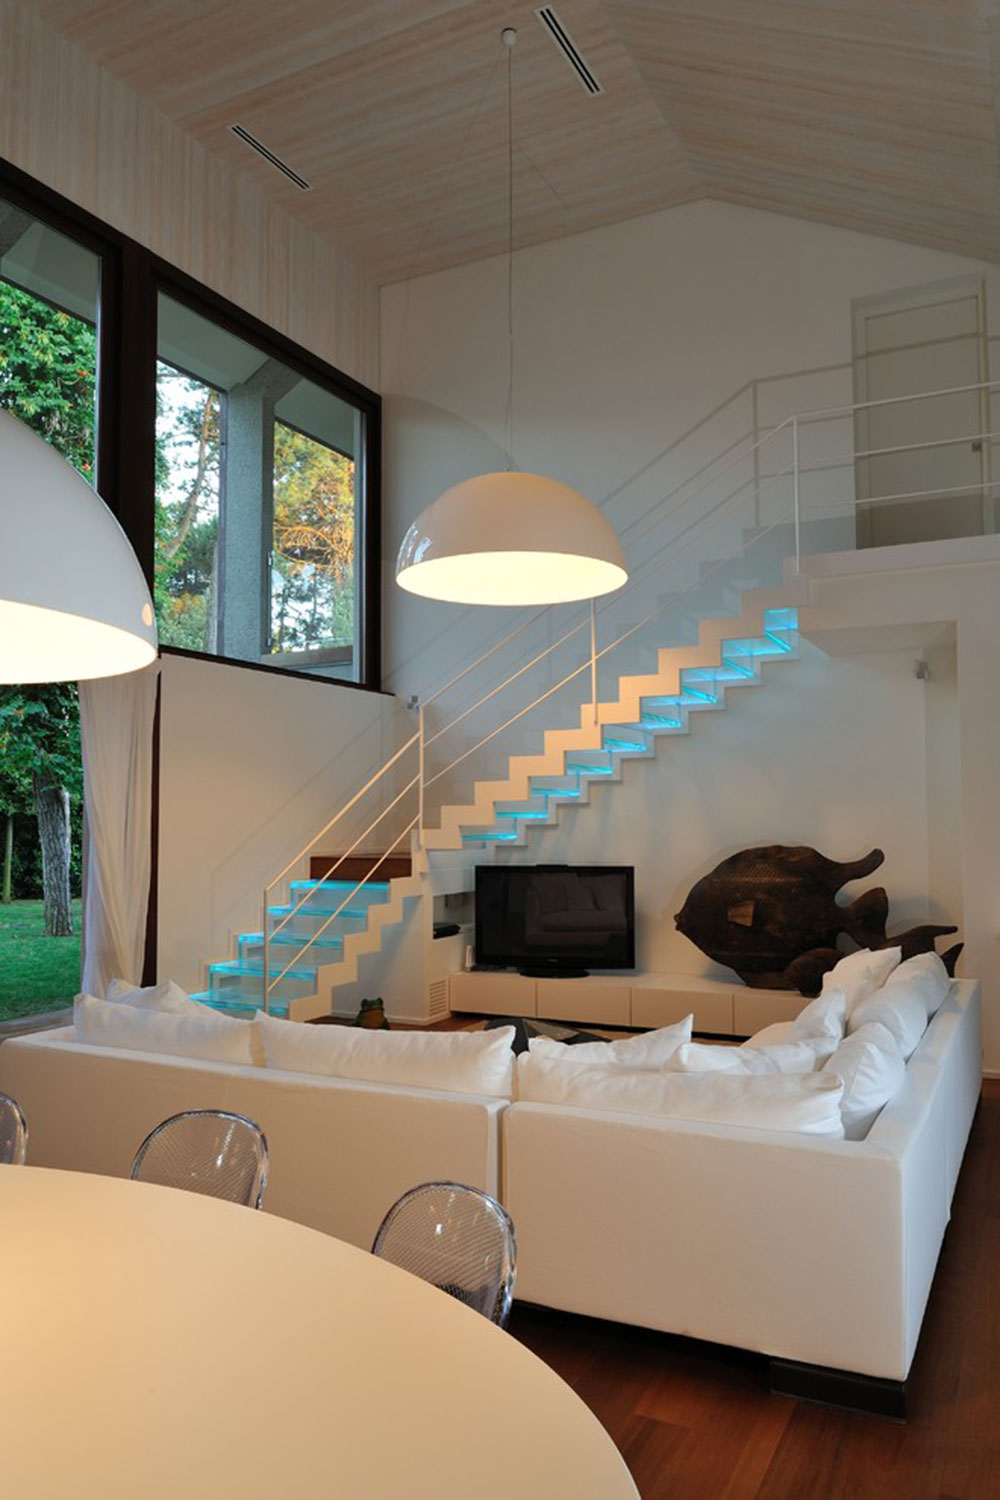 Modern and exquisite floating staircase13 Modern and exquisite floating staircase designs